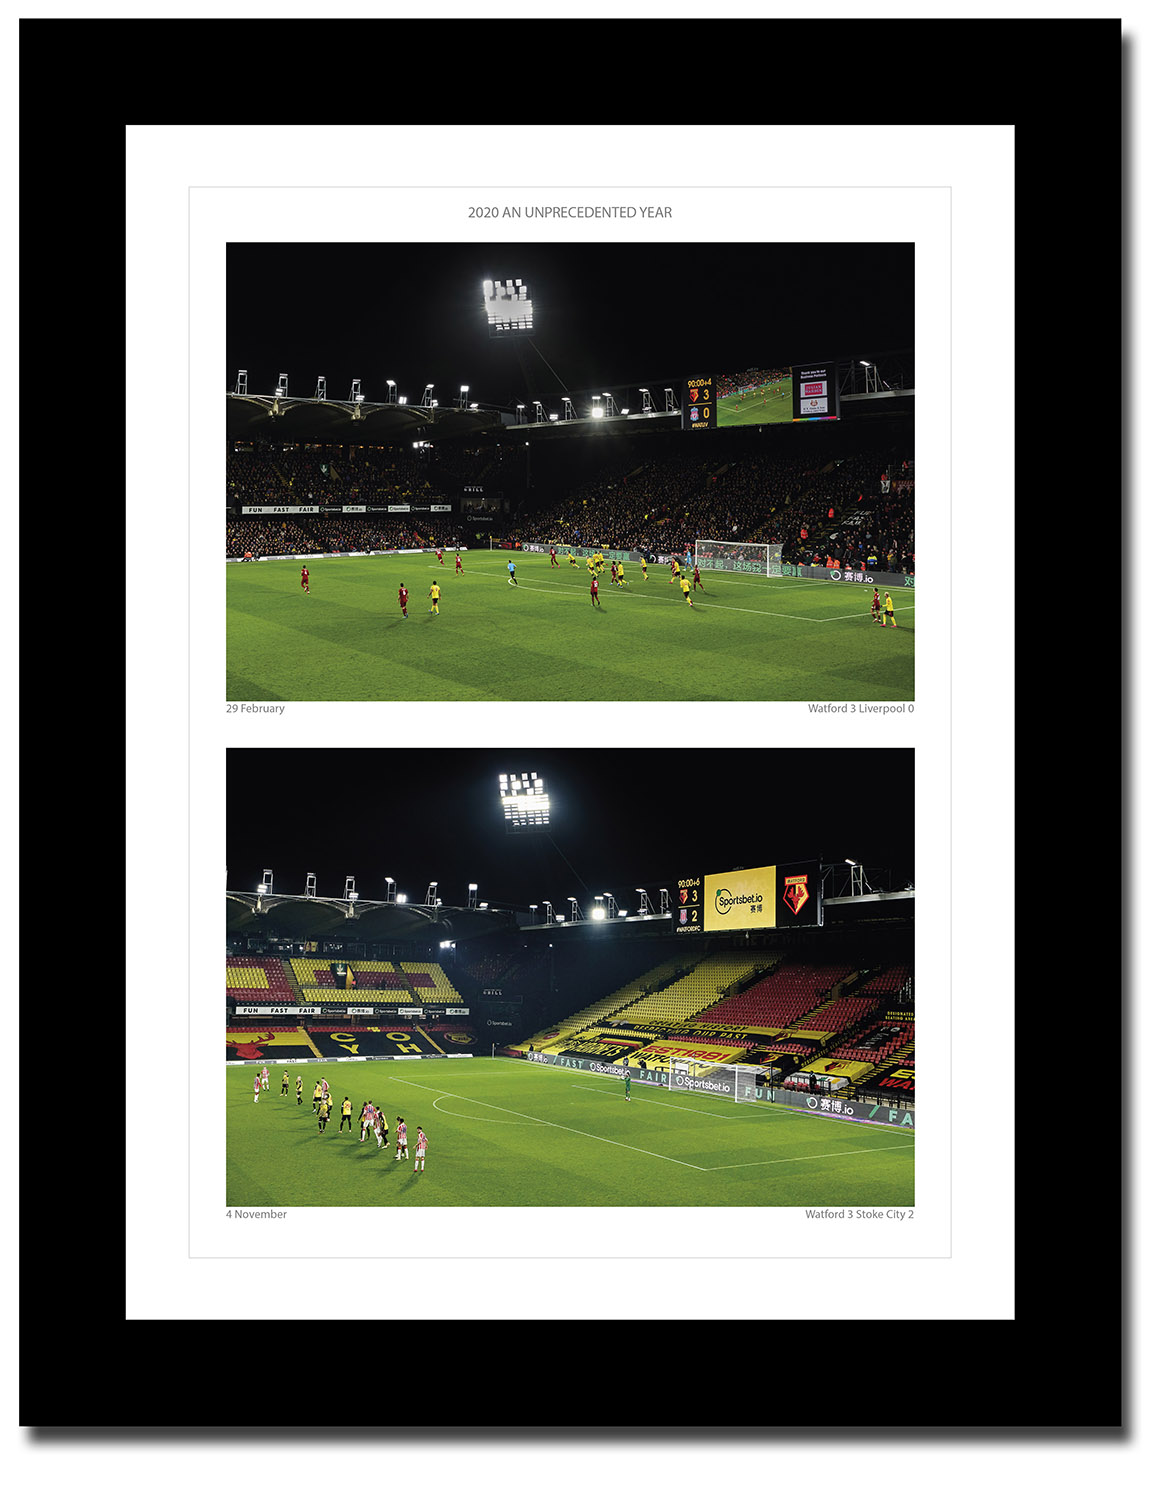 Framed print of Watford FC in the pandemic